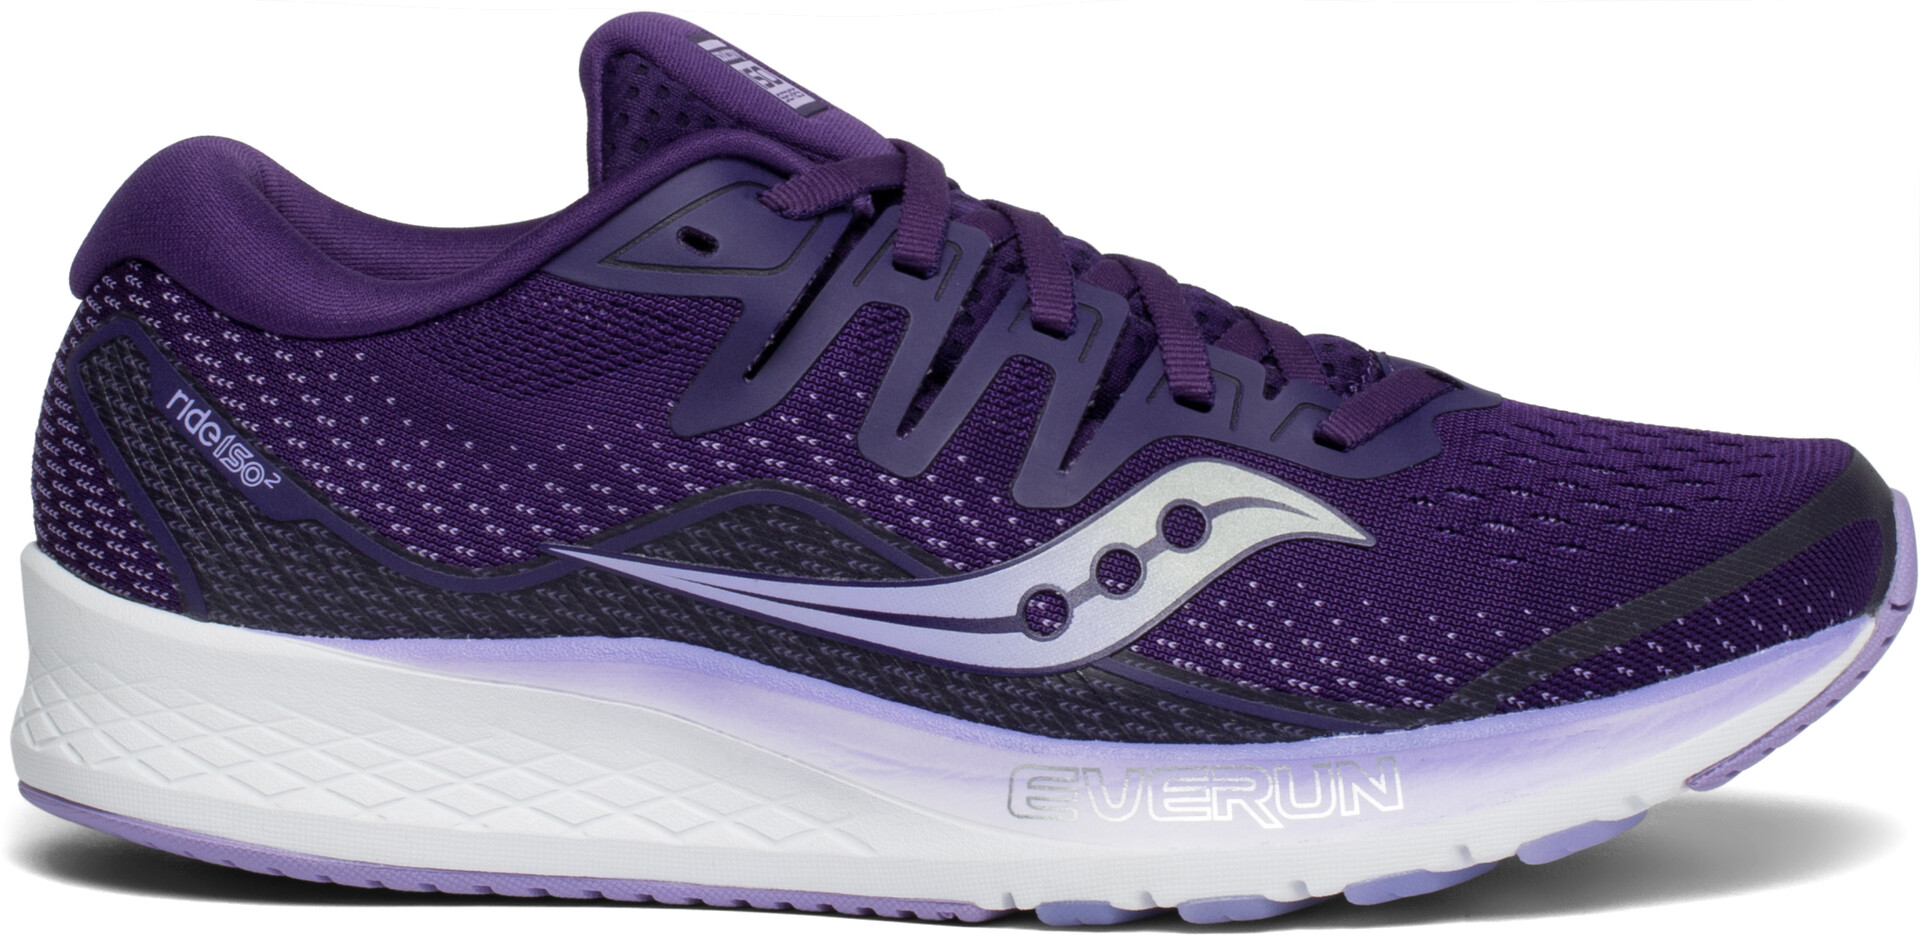 CHAUSSURES SAUCONY RIDE 10 POUR HOMMES Chaussures de running